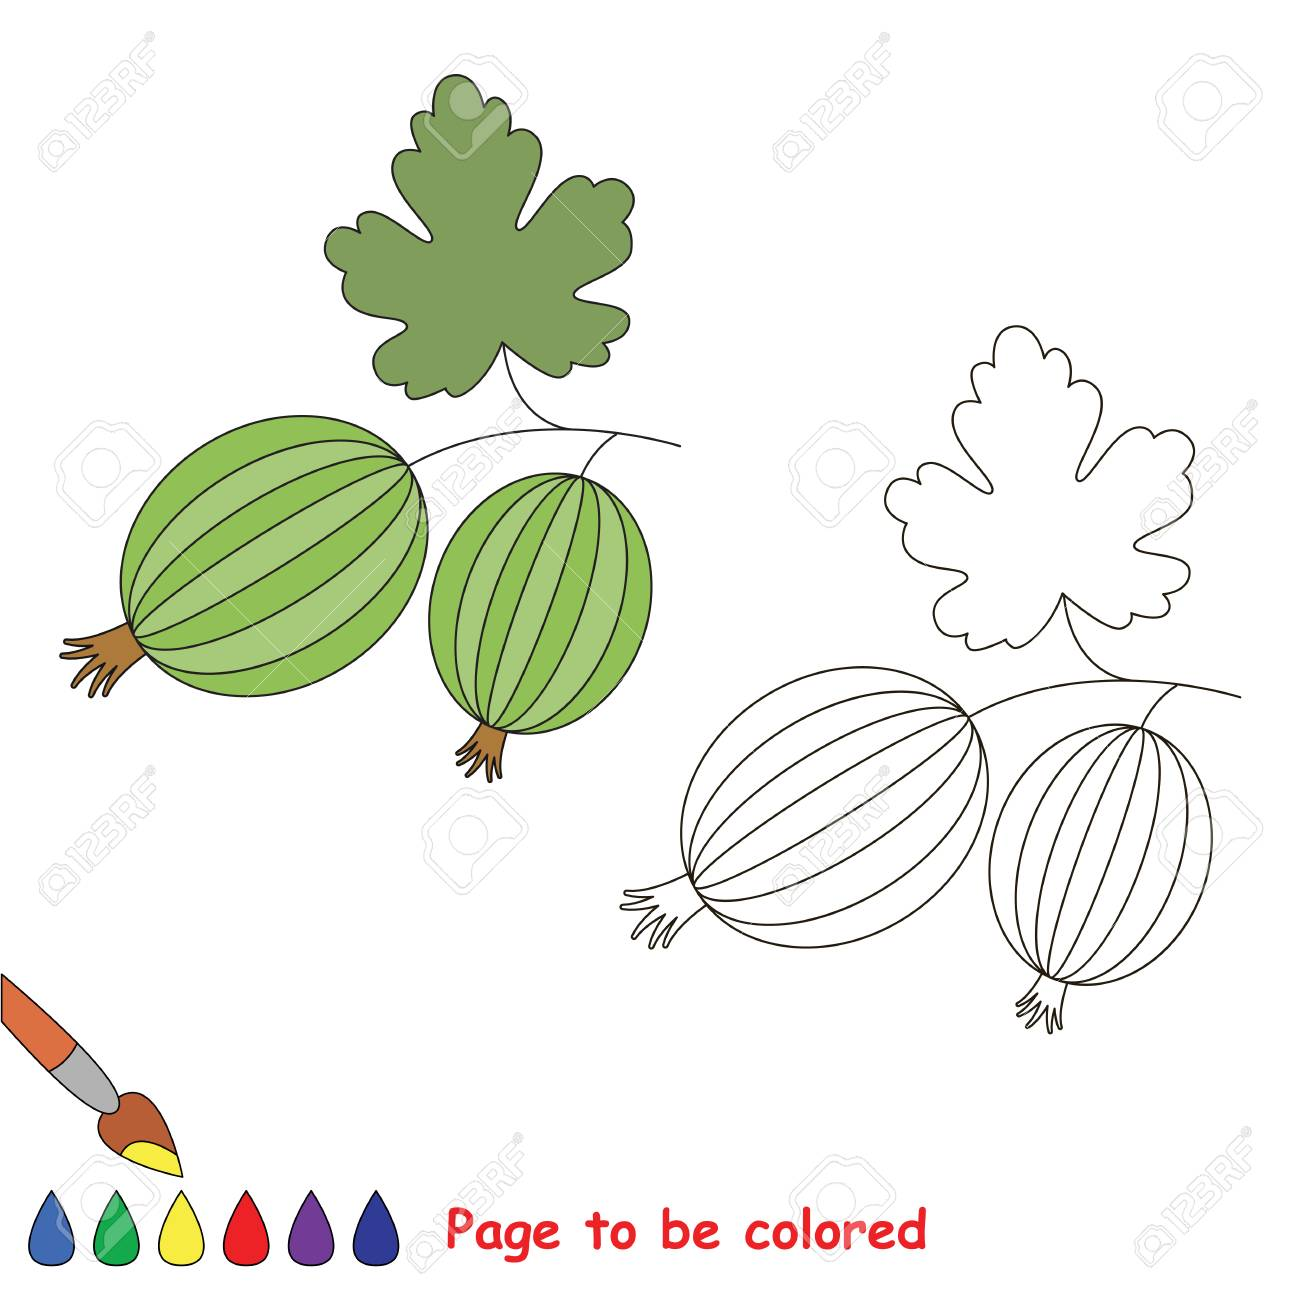 Educational Worksheet To Be Colored By Sample. Easy Educational ...